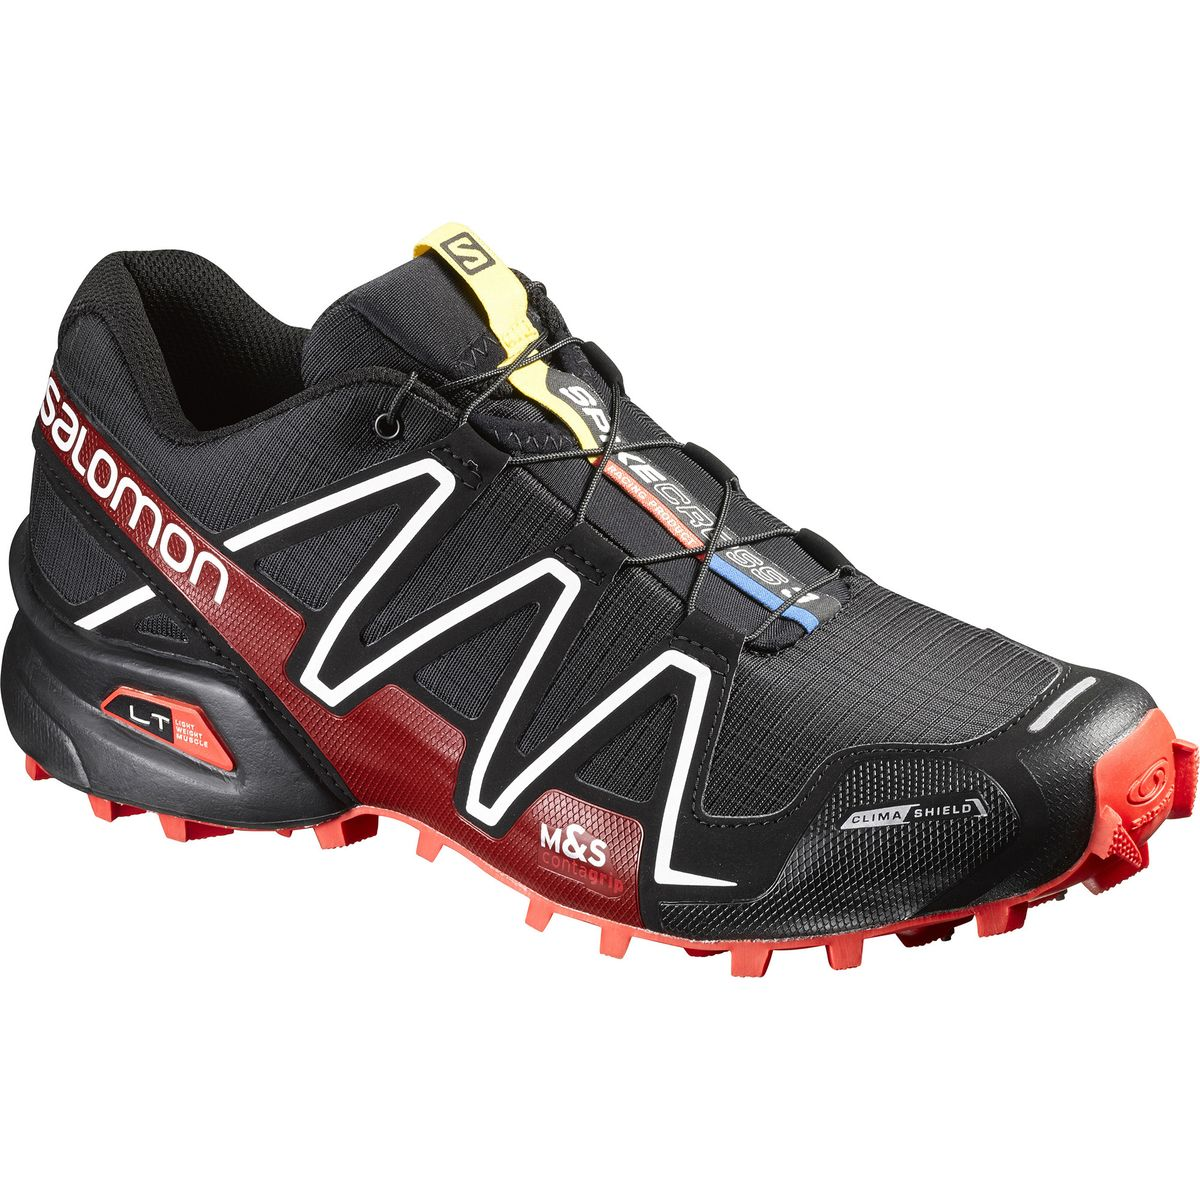 salomon spikecross 3 cs trail running shoe s